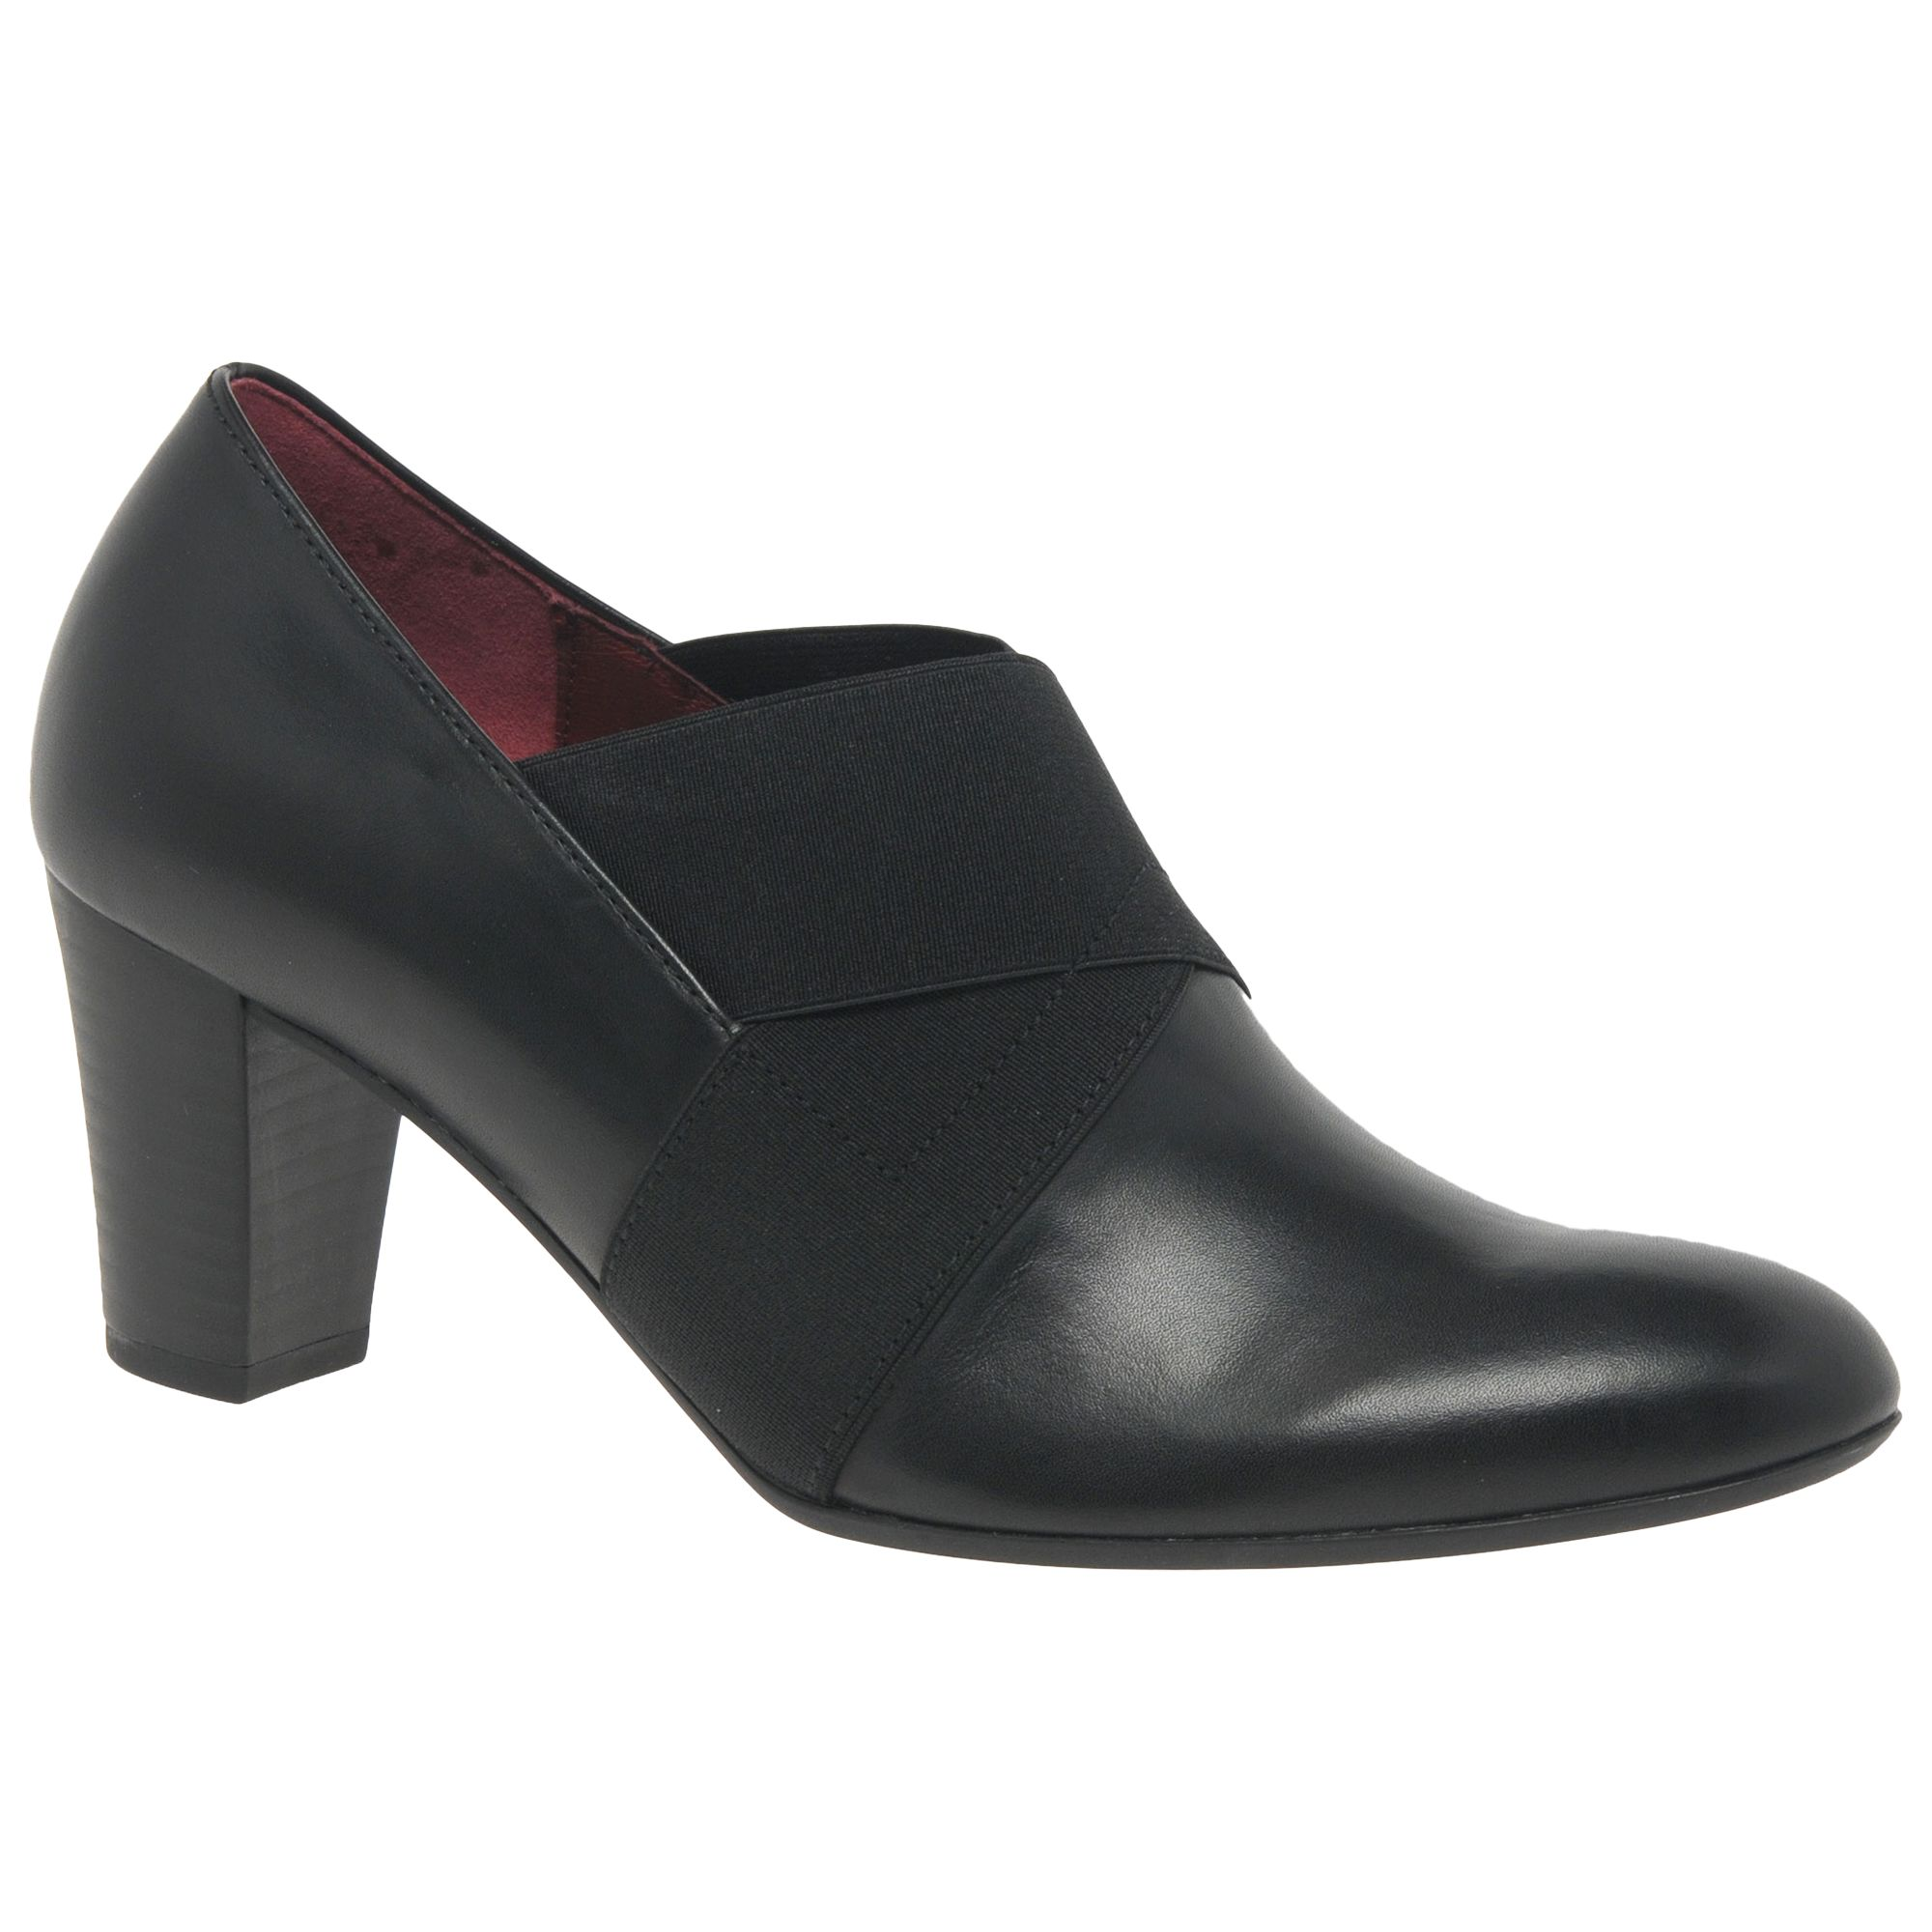 abc93c081e0 Gabor Function Wide Fit High Cut Court Shoes at John Lewis & Partners